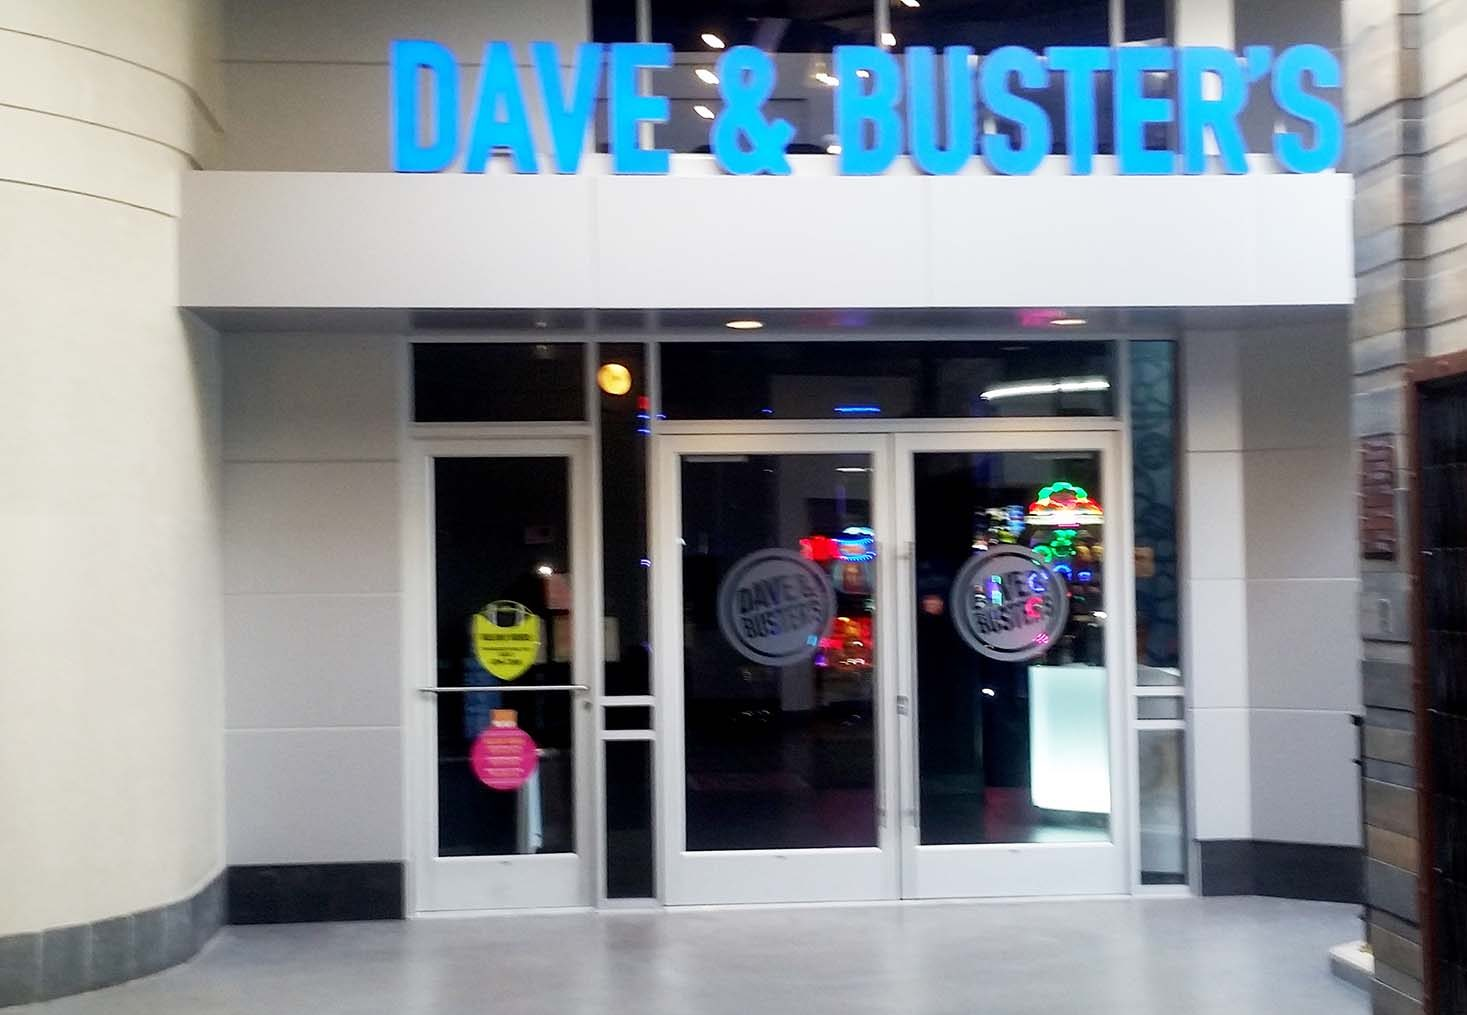 Oct 30, · Dave & Buster's, Hanover: See unbiased reviews of Dave & Buster's, rated 3 of 5 on TripAdvisor and ranked #49 of restaurants in Hanover. Arundel Mills Cir Ste D1, Hanover, MD +1 Website. Share. Save. My family and some friends went to Dave and busters to celebrate my sons birthday. The 3/5().